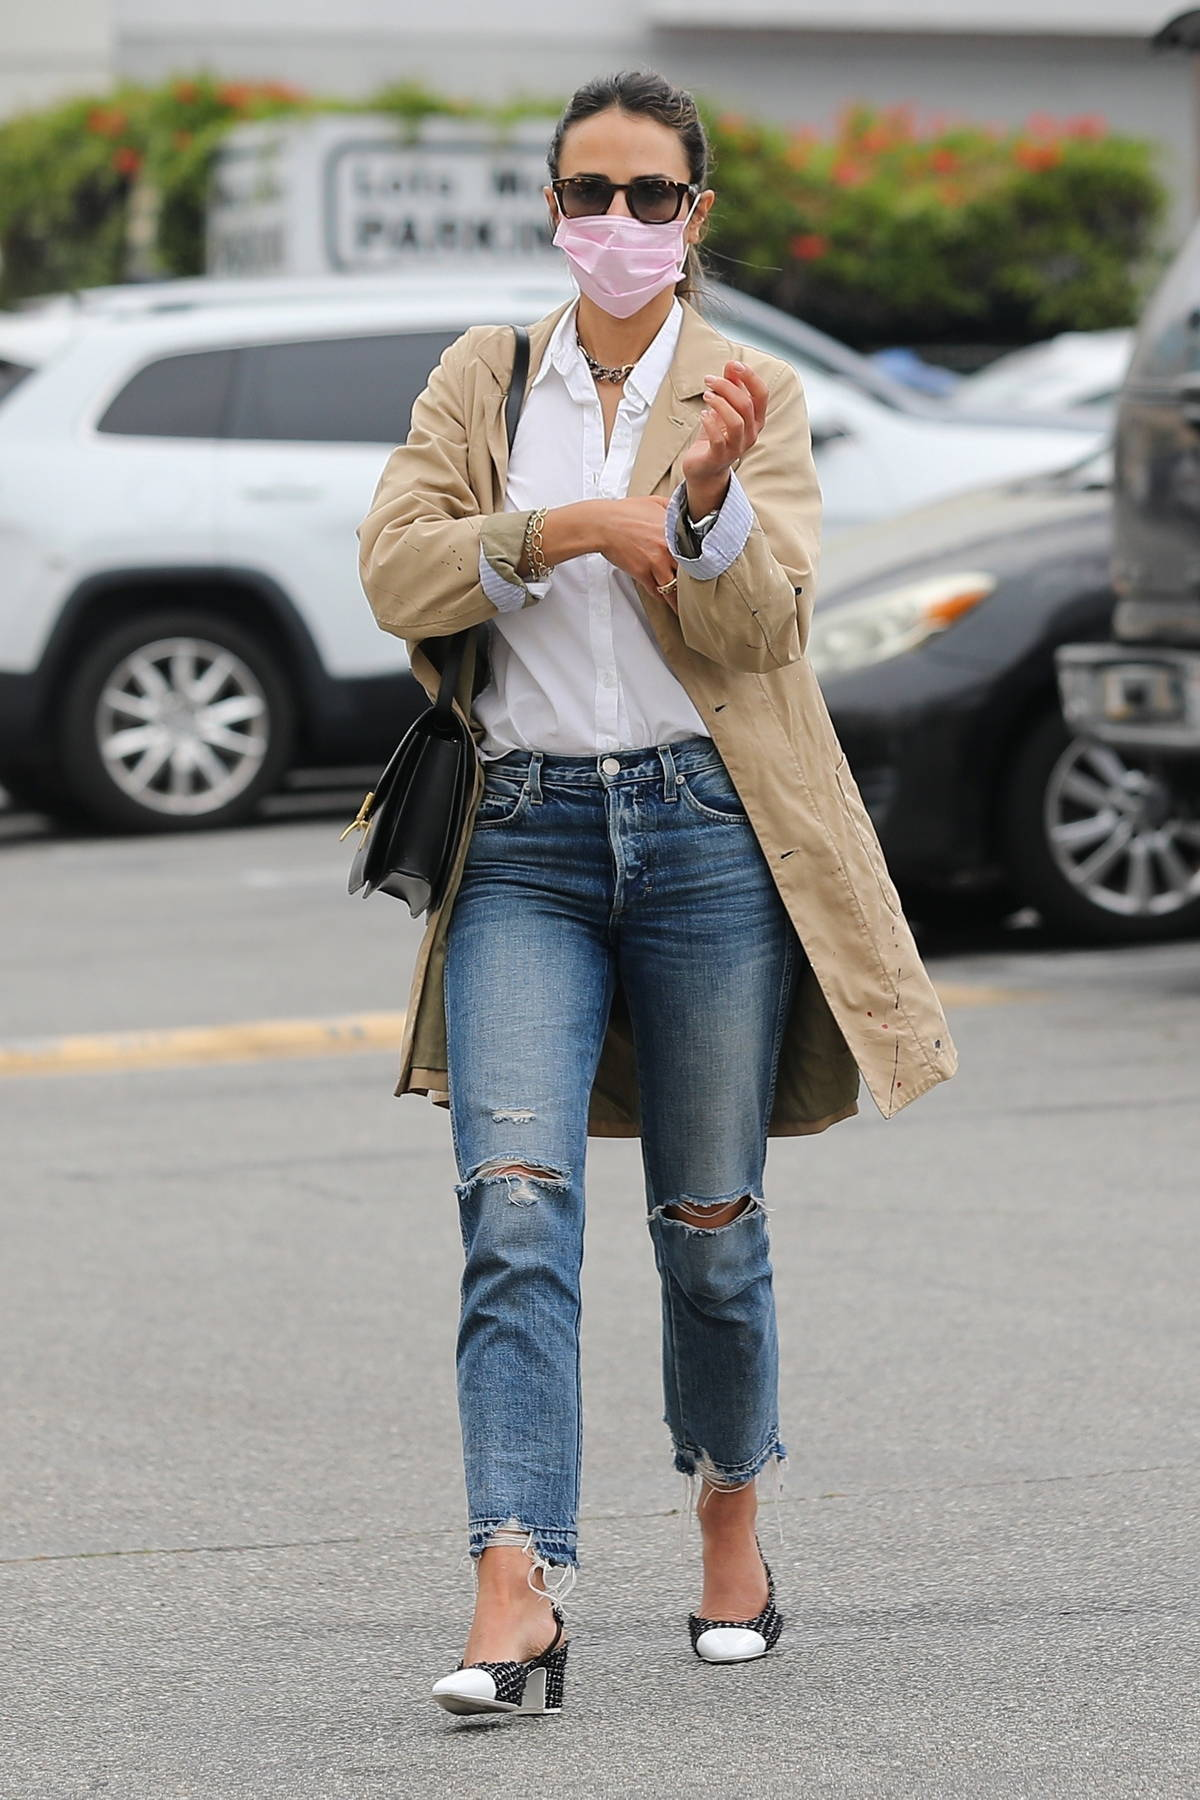 Jordana Brewster dressed for business as she heads to lunch meeting at Bossa Nova in West Hollywood, California